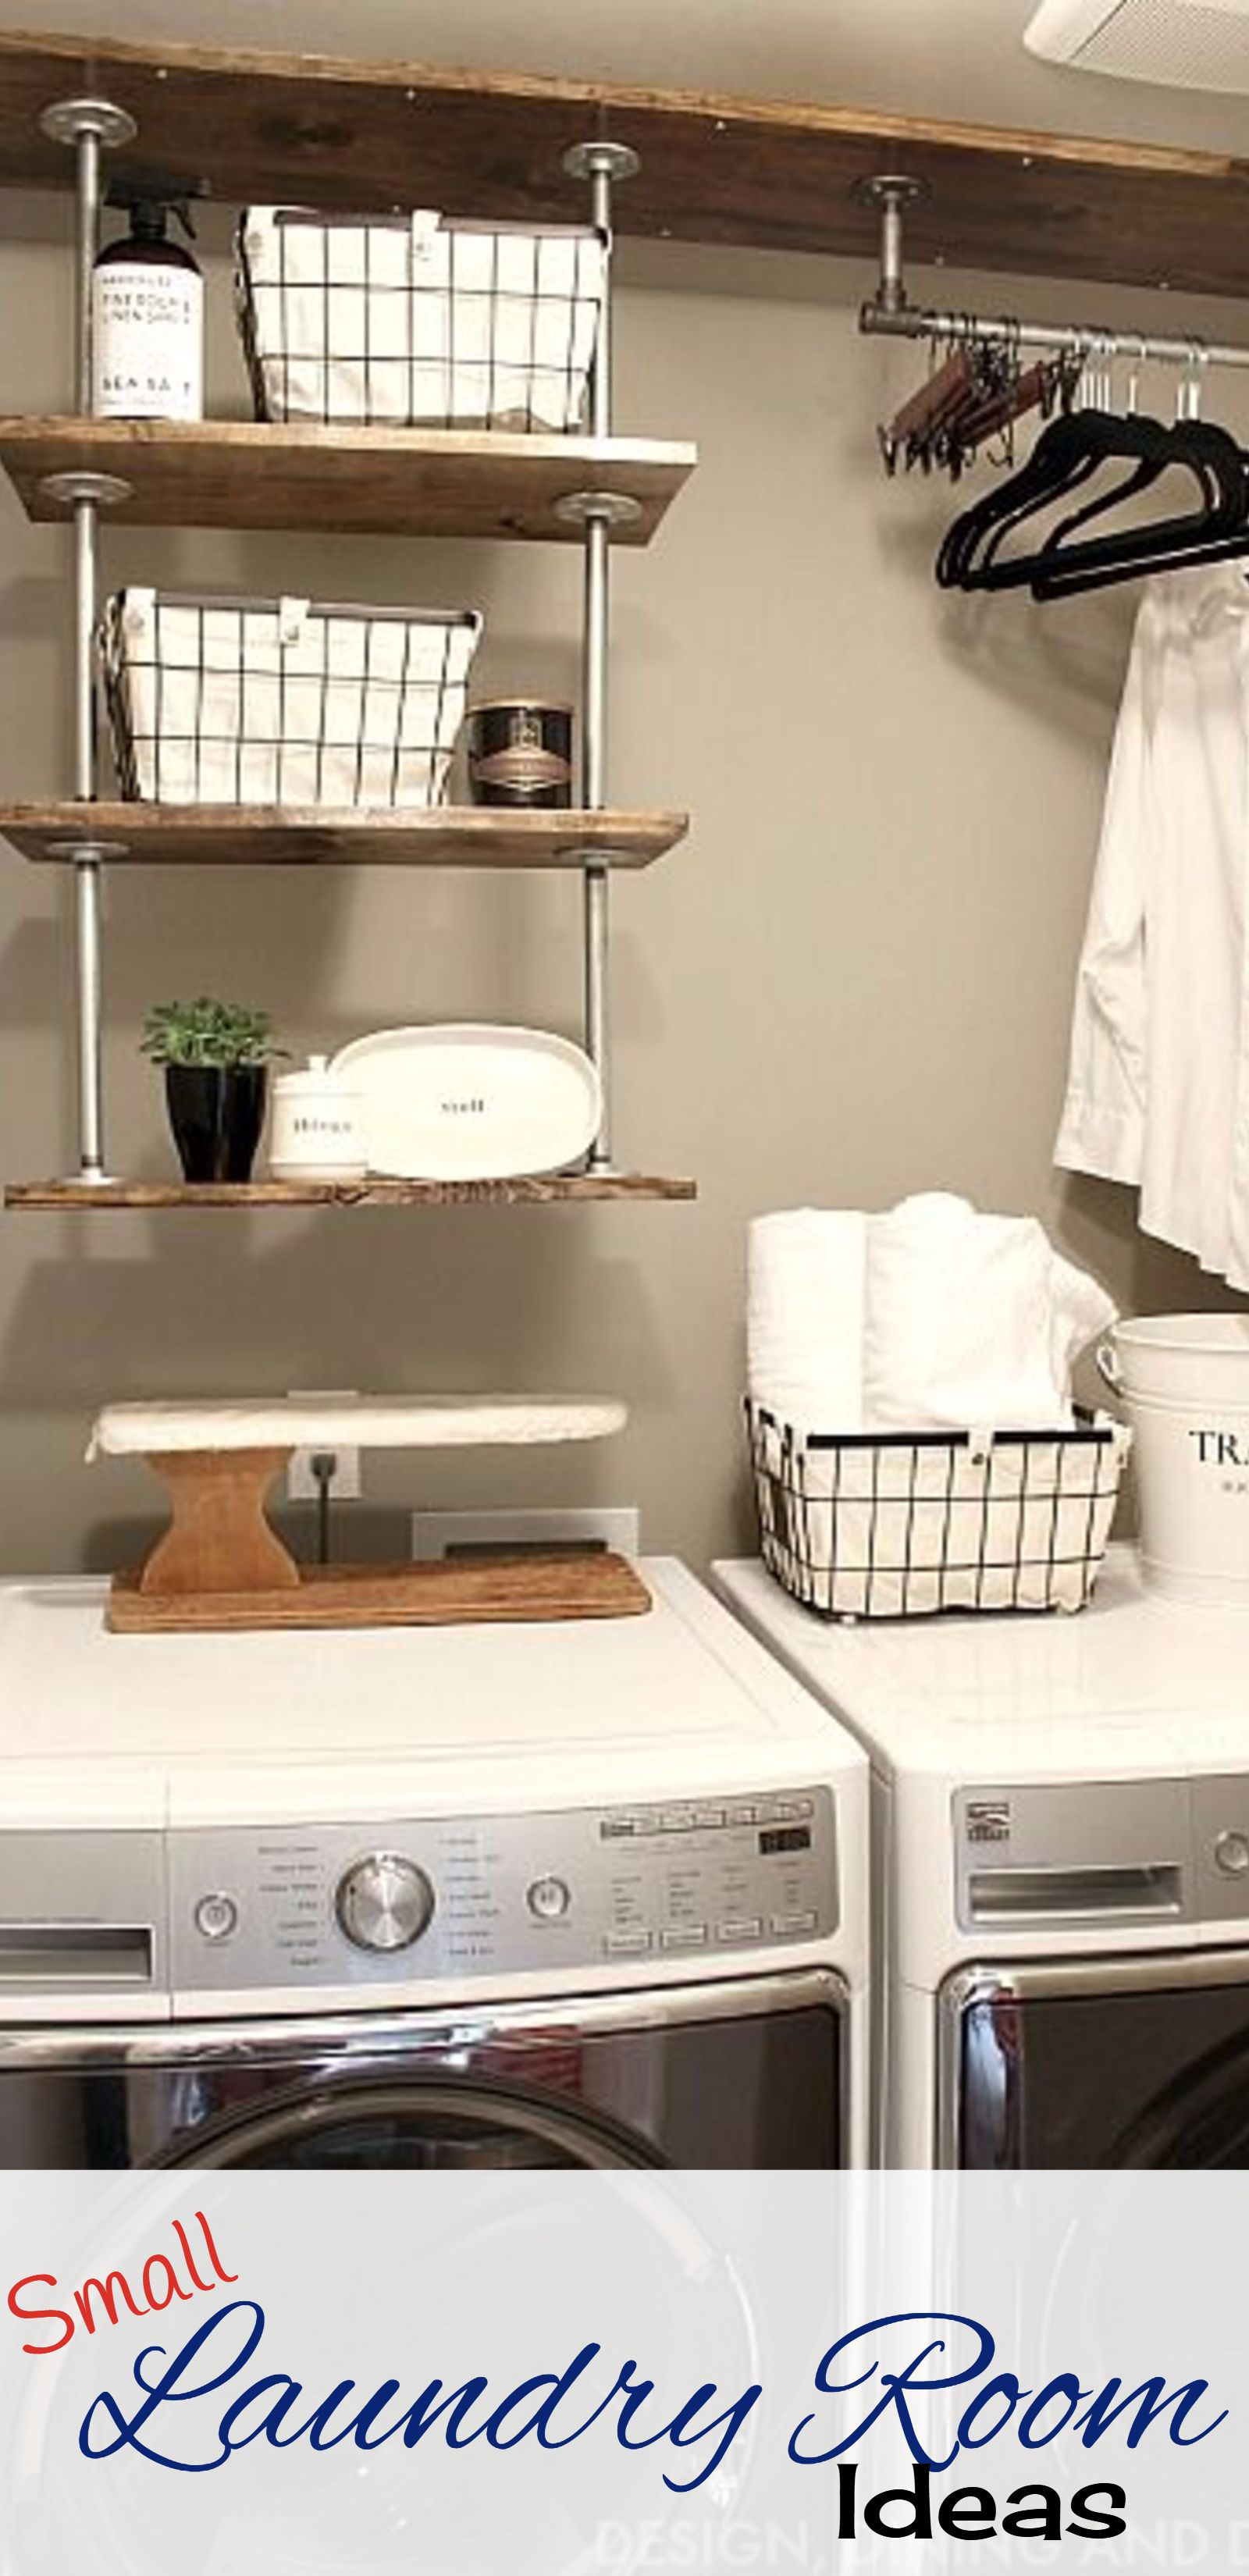 Laundry room ideas drying racks cute laundry rooms utilitarian spaces - Tiny Laundry Room Ideas Space Saving Diy Creative Ideas For Small Laundry Rooms